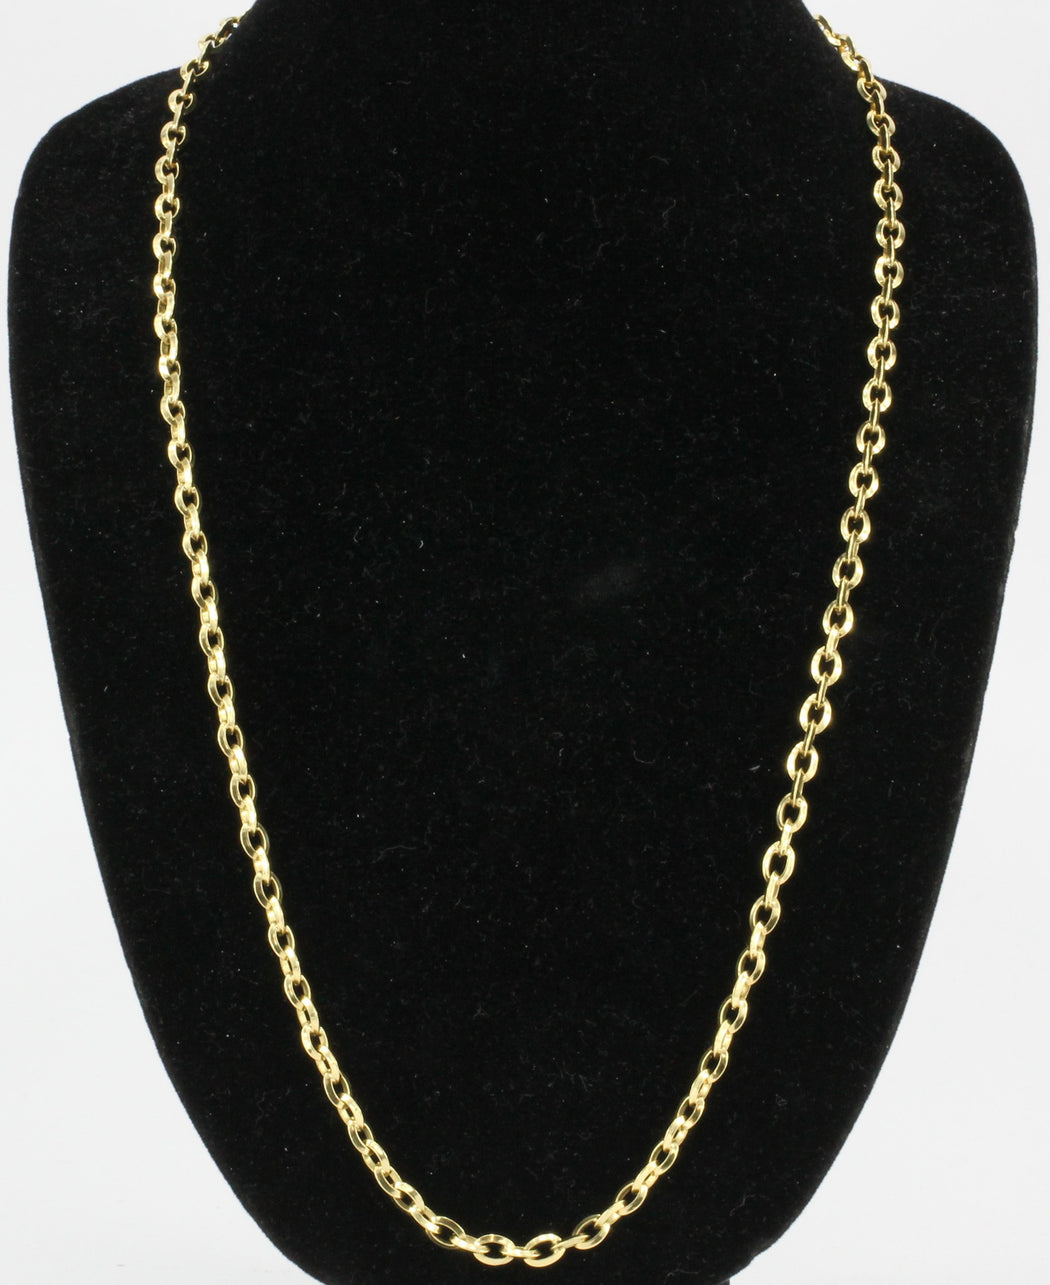 products realreal jewelry david oval yurman link chain necklace the xl necklaces enlarged